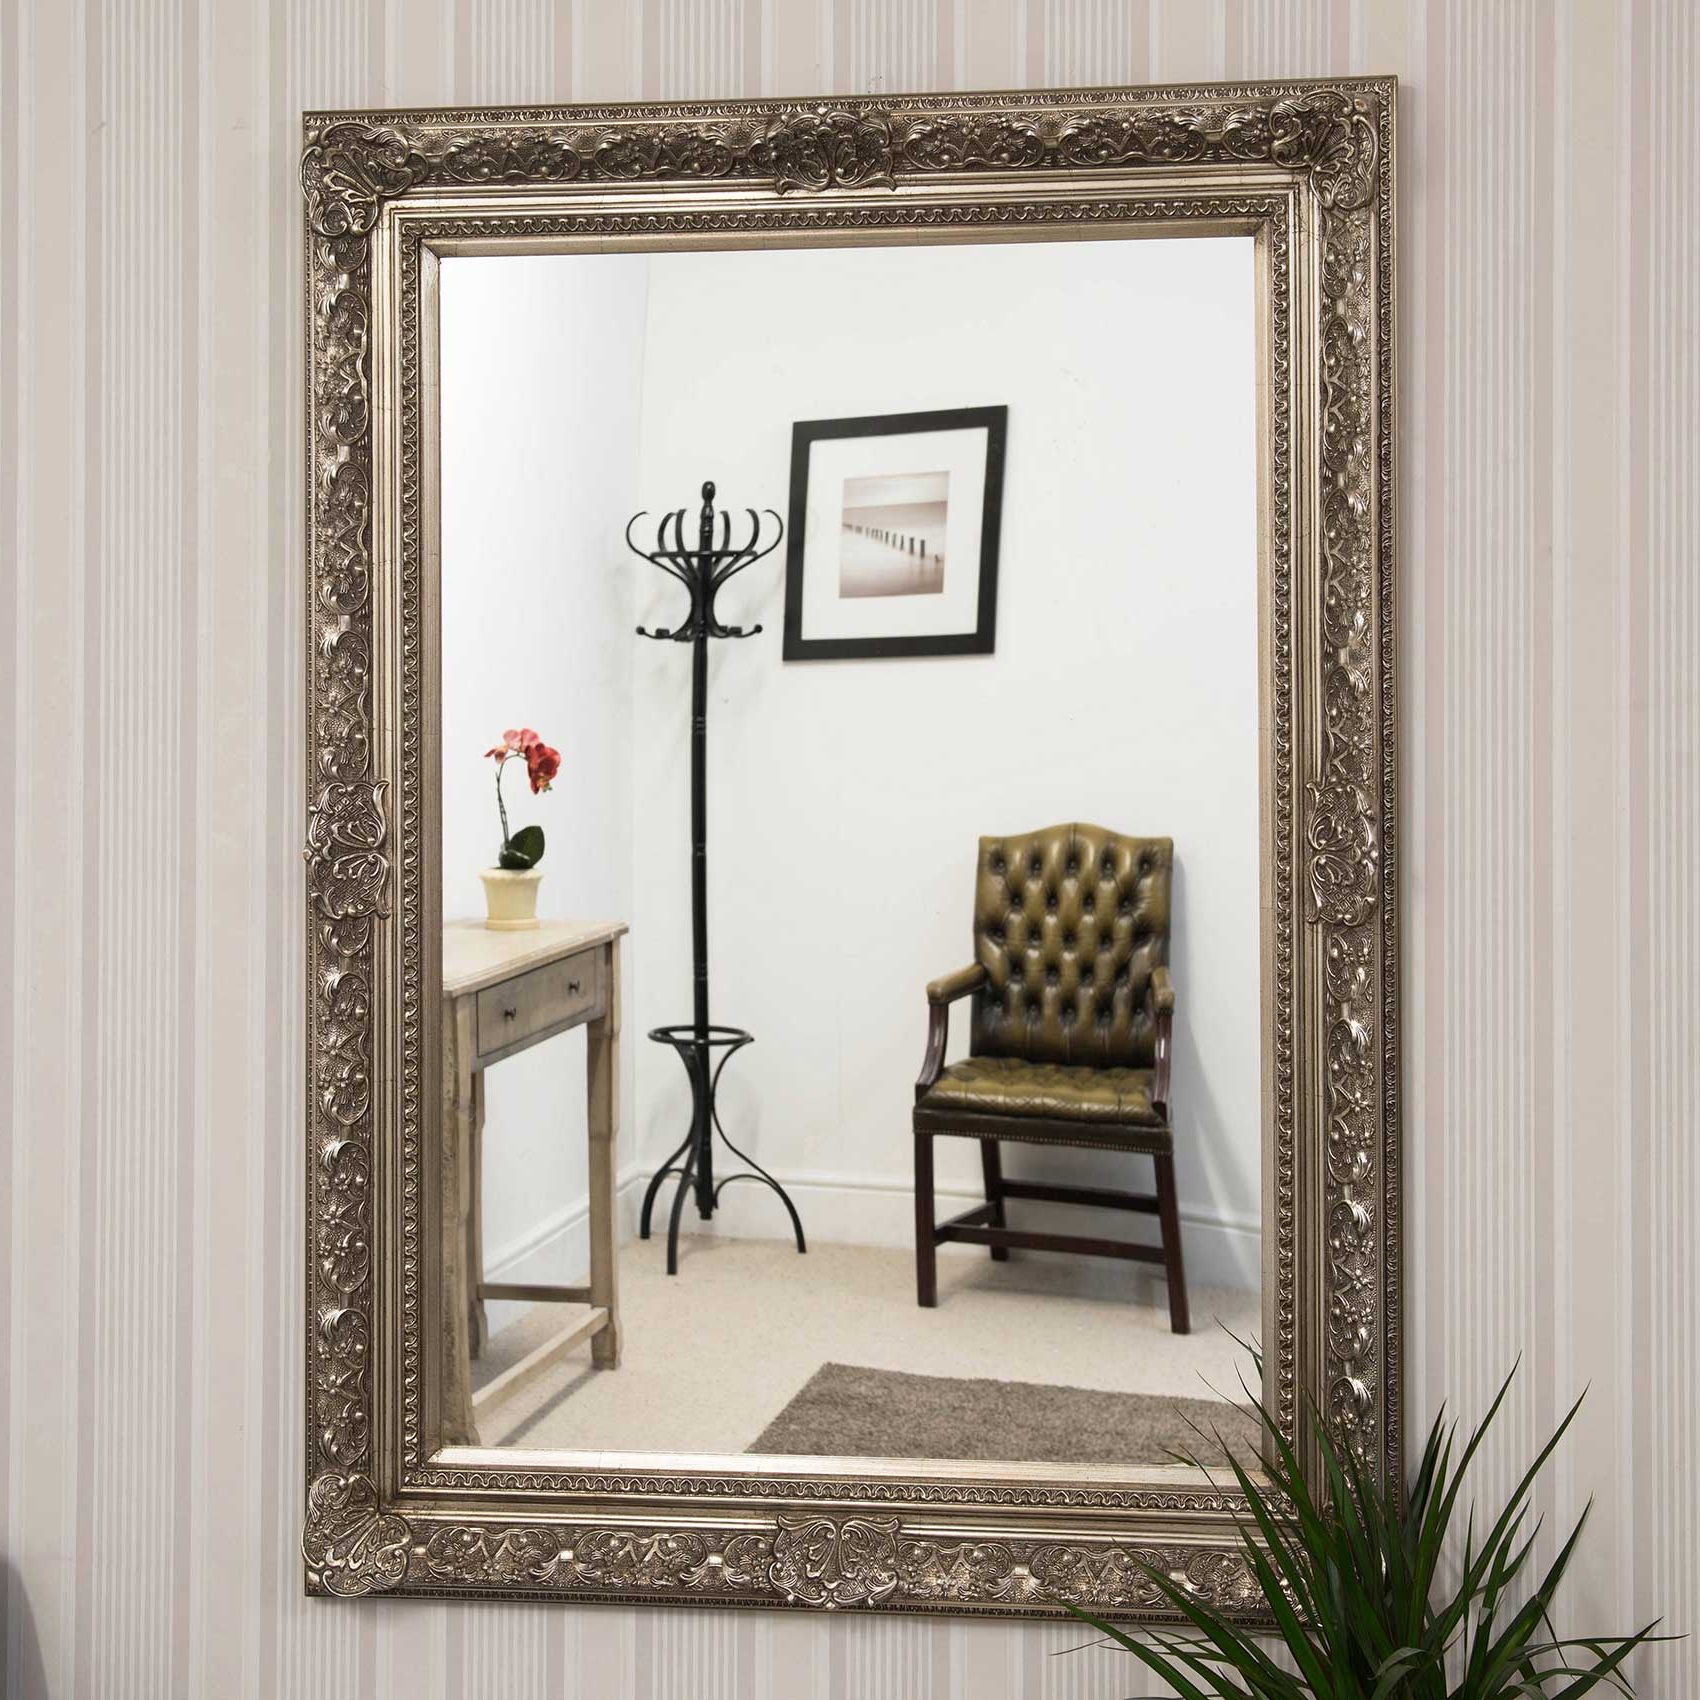 Big Wall Mirrors For Famous Details About Large Antique Design Ornate Silver Big Wall Mirror New 4ft2 X  3ft4 127cm X 101cm (View 8 of 20)